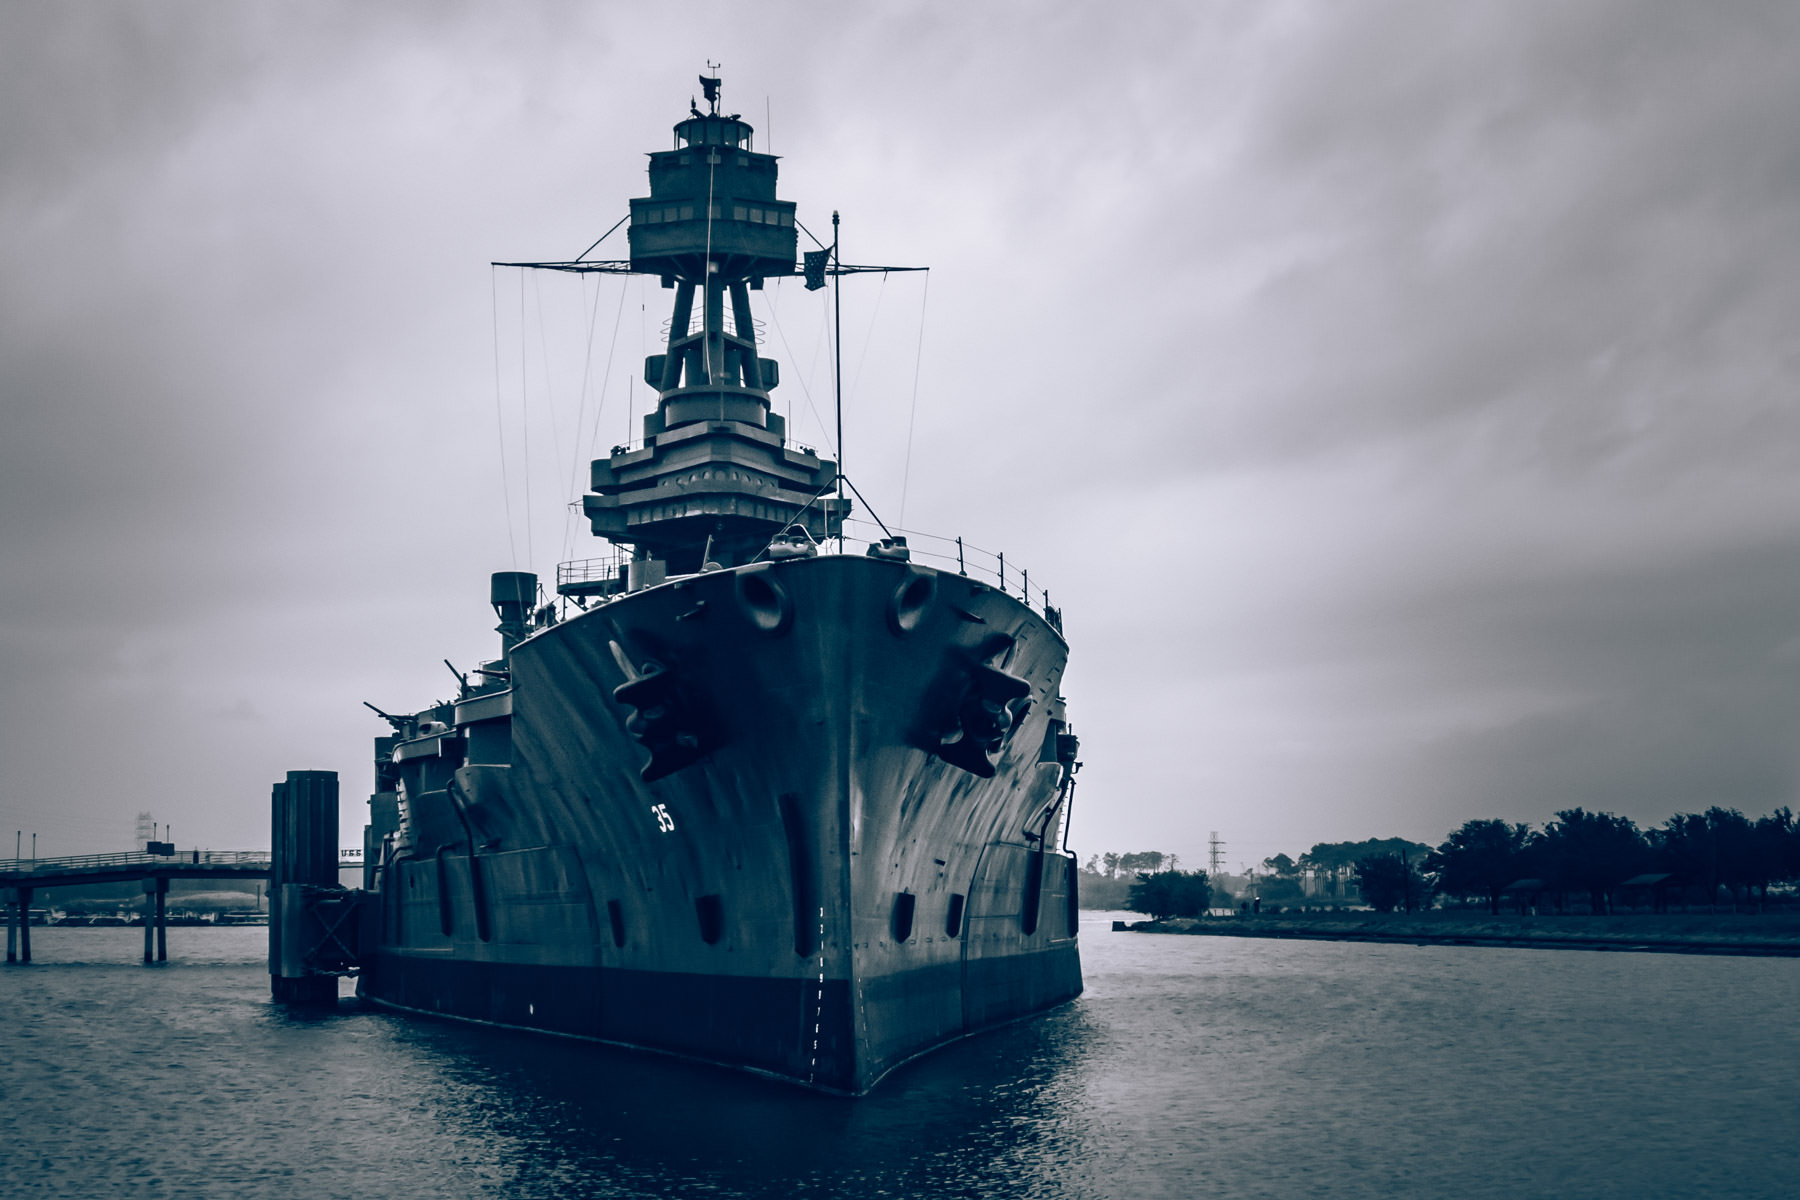 The USS Texas, commissioned in 1914, saw action in both World Wars, including D-Day and at Iwo Jima and is the only extant World War I-era dreadnoughts. Since1948, she has beenpermanently moored adjacent to the Houston Ship Channel near the San Jacinto Monument to act as a museum ship.